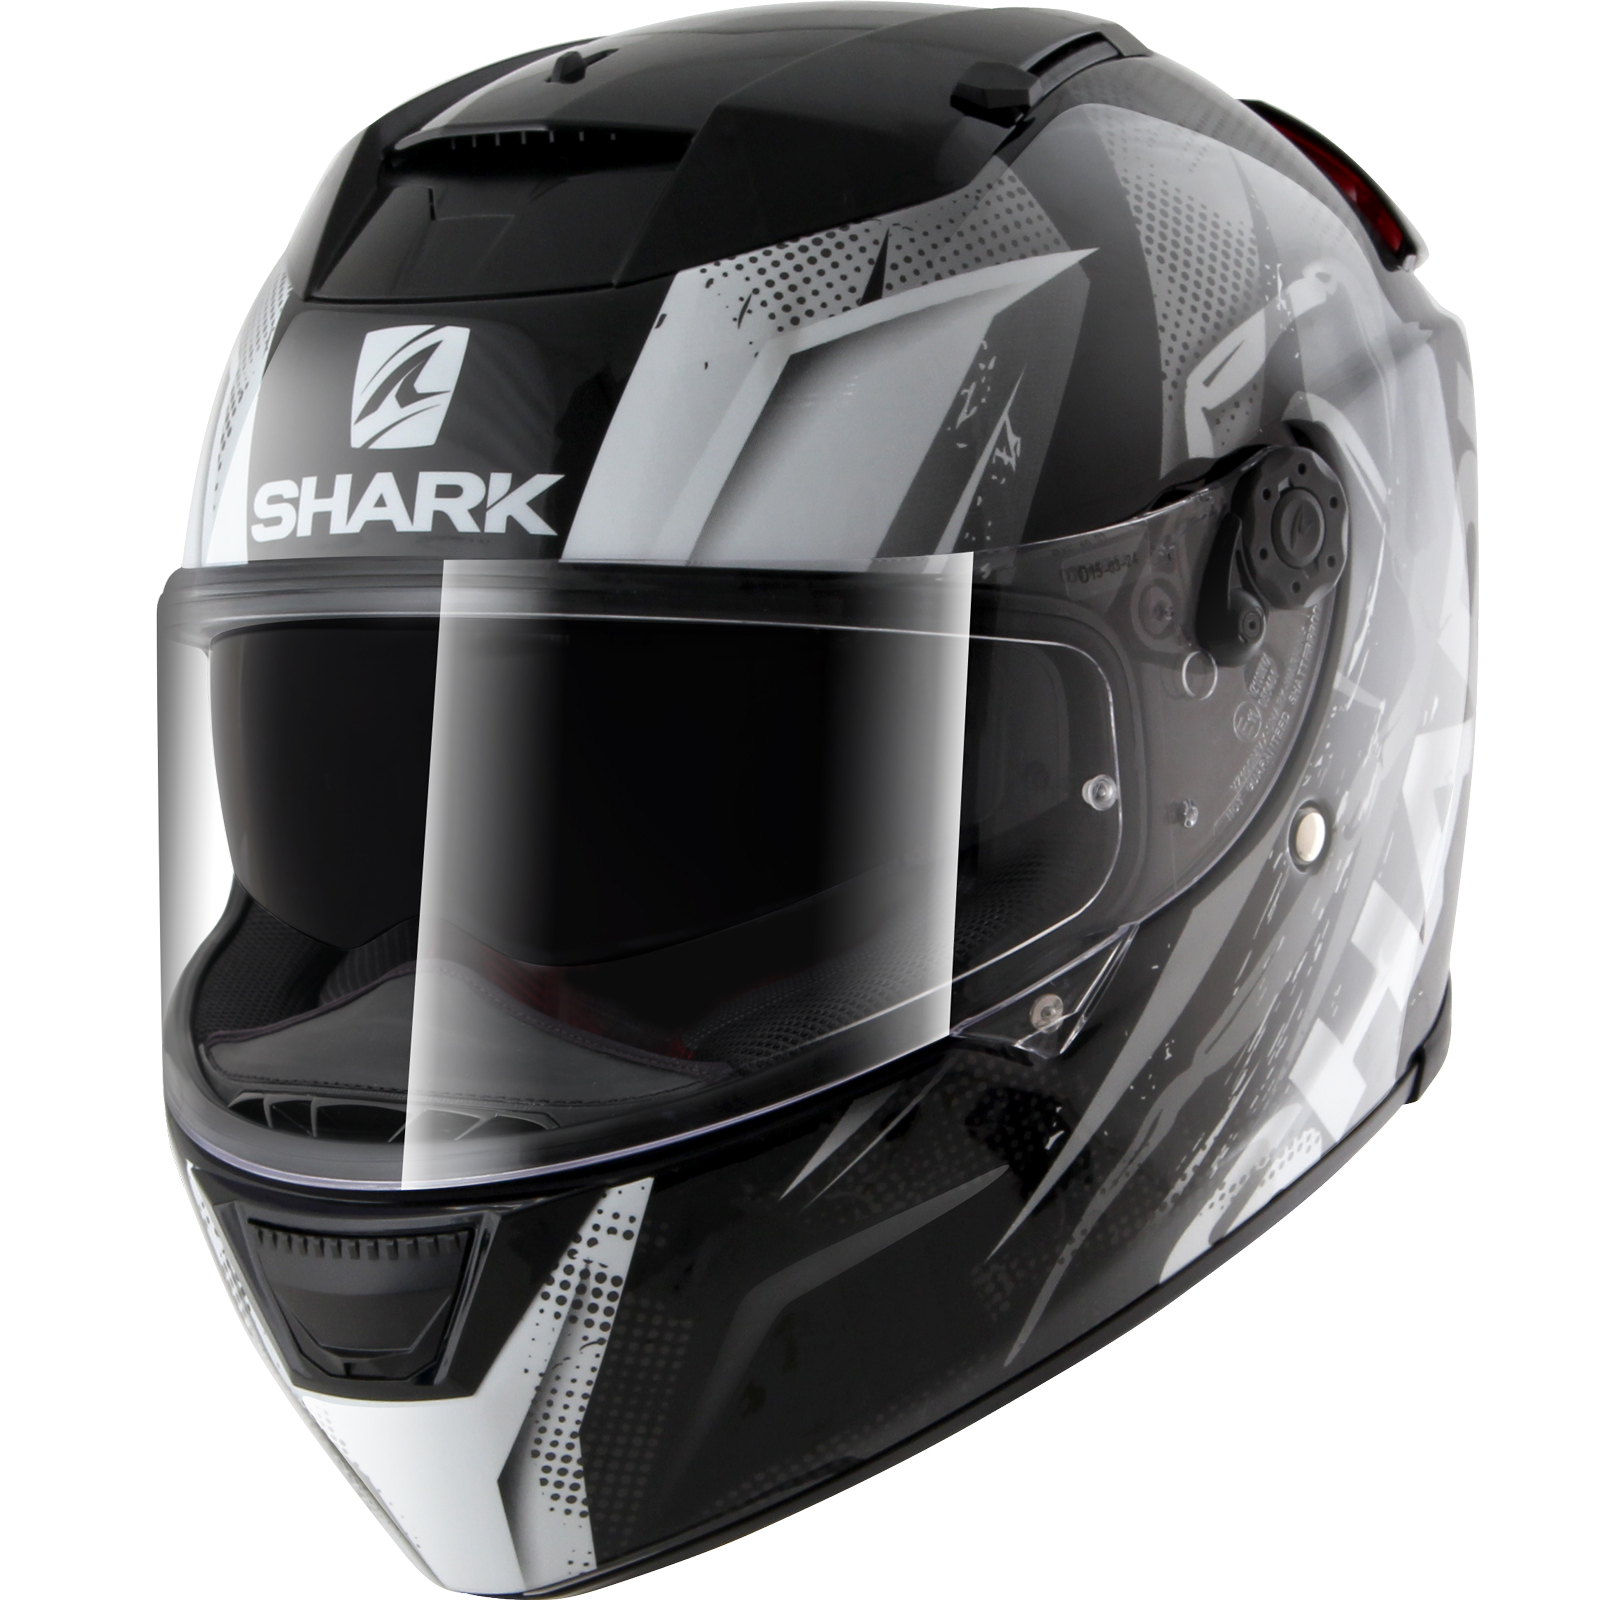 shark speed r tizzy motorcycle helmet visor dd ring pinlock insert sun shield ebay. Black Bedroom Furniture Sets. Home Design Ideas